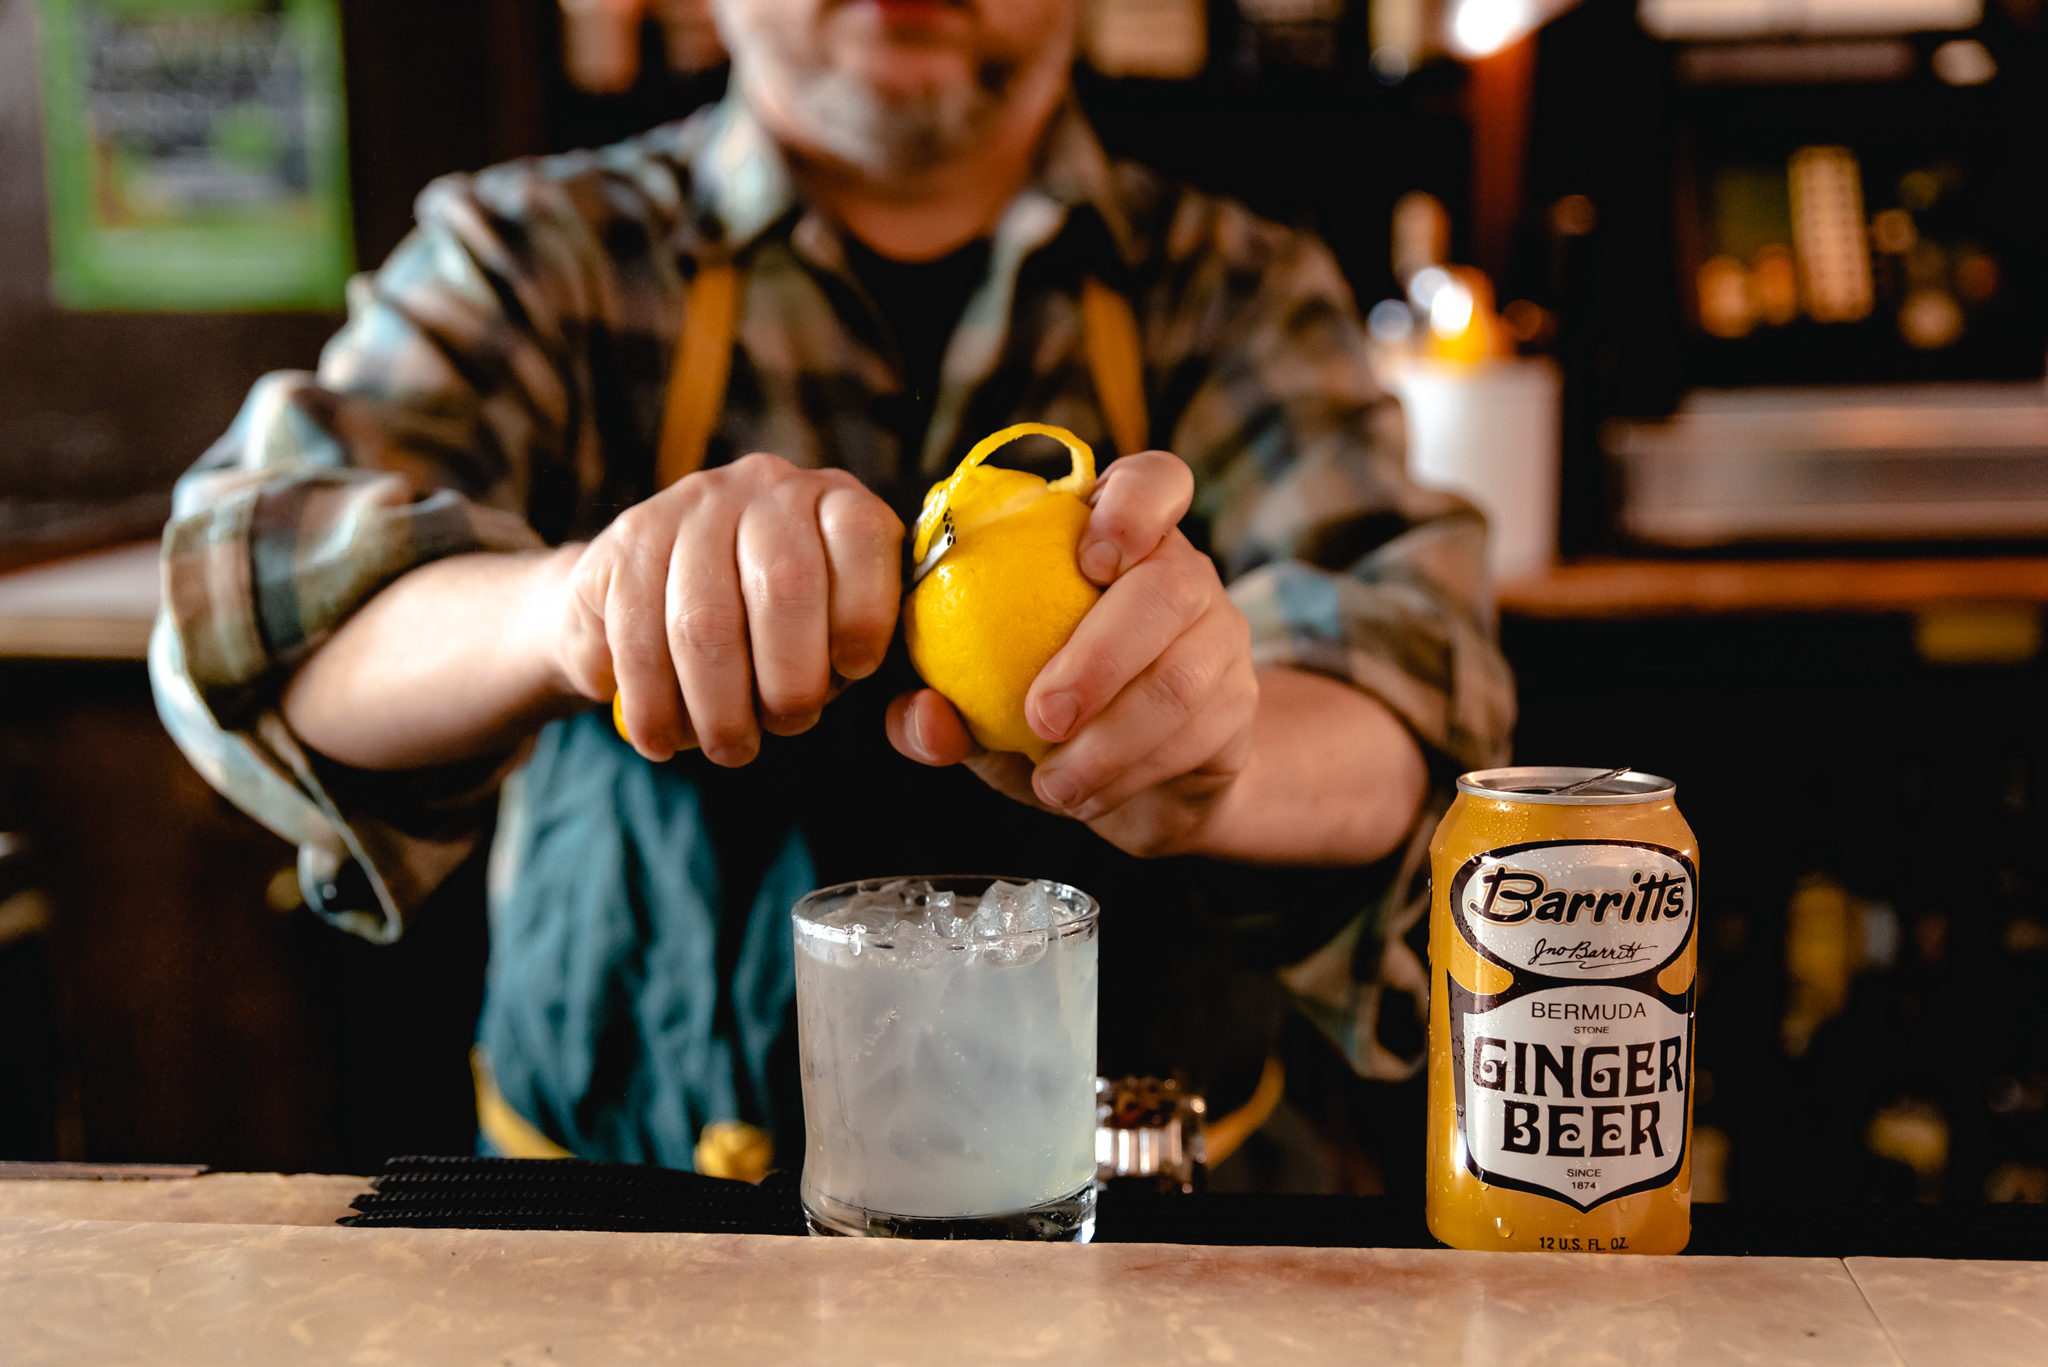 Barritt's Ginger Beer May 2019-11.jpg